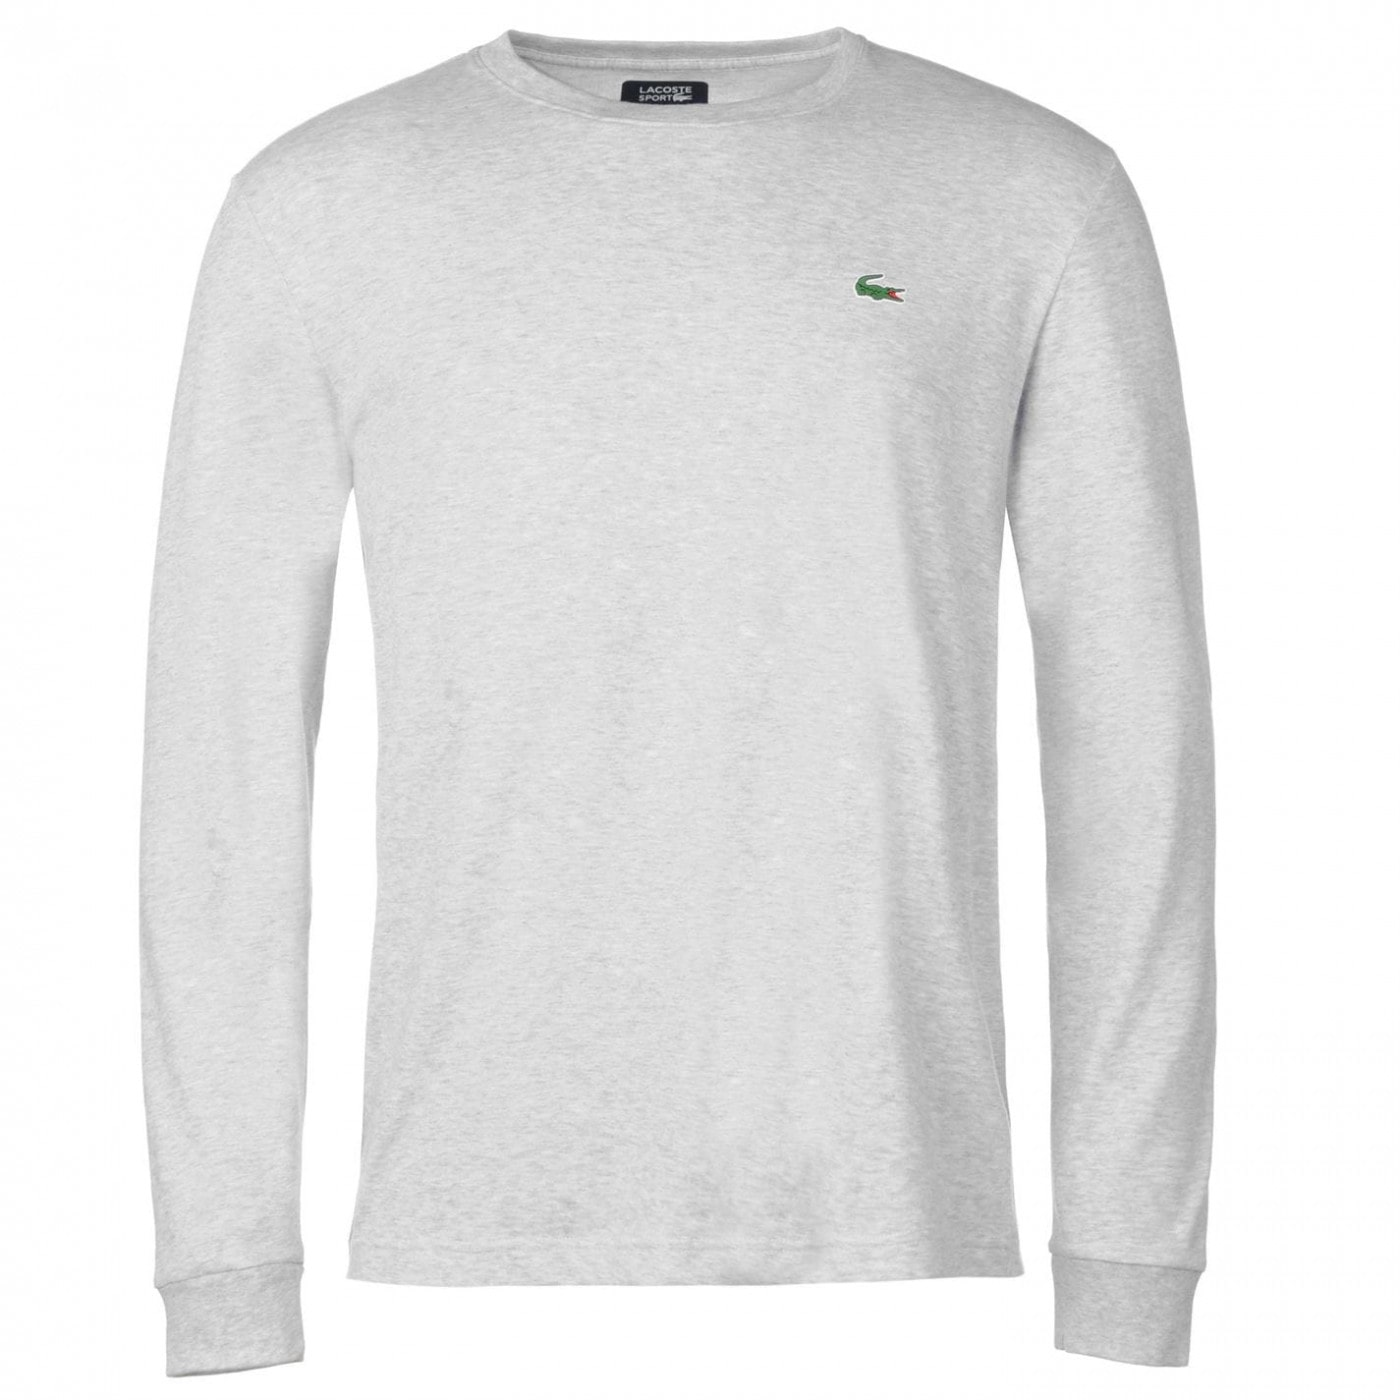 Lacoste Sleeve T Shirt